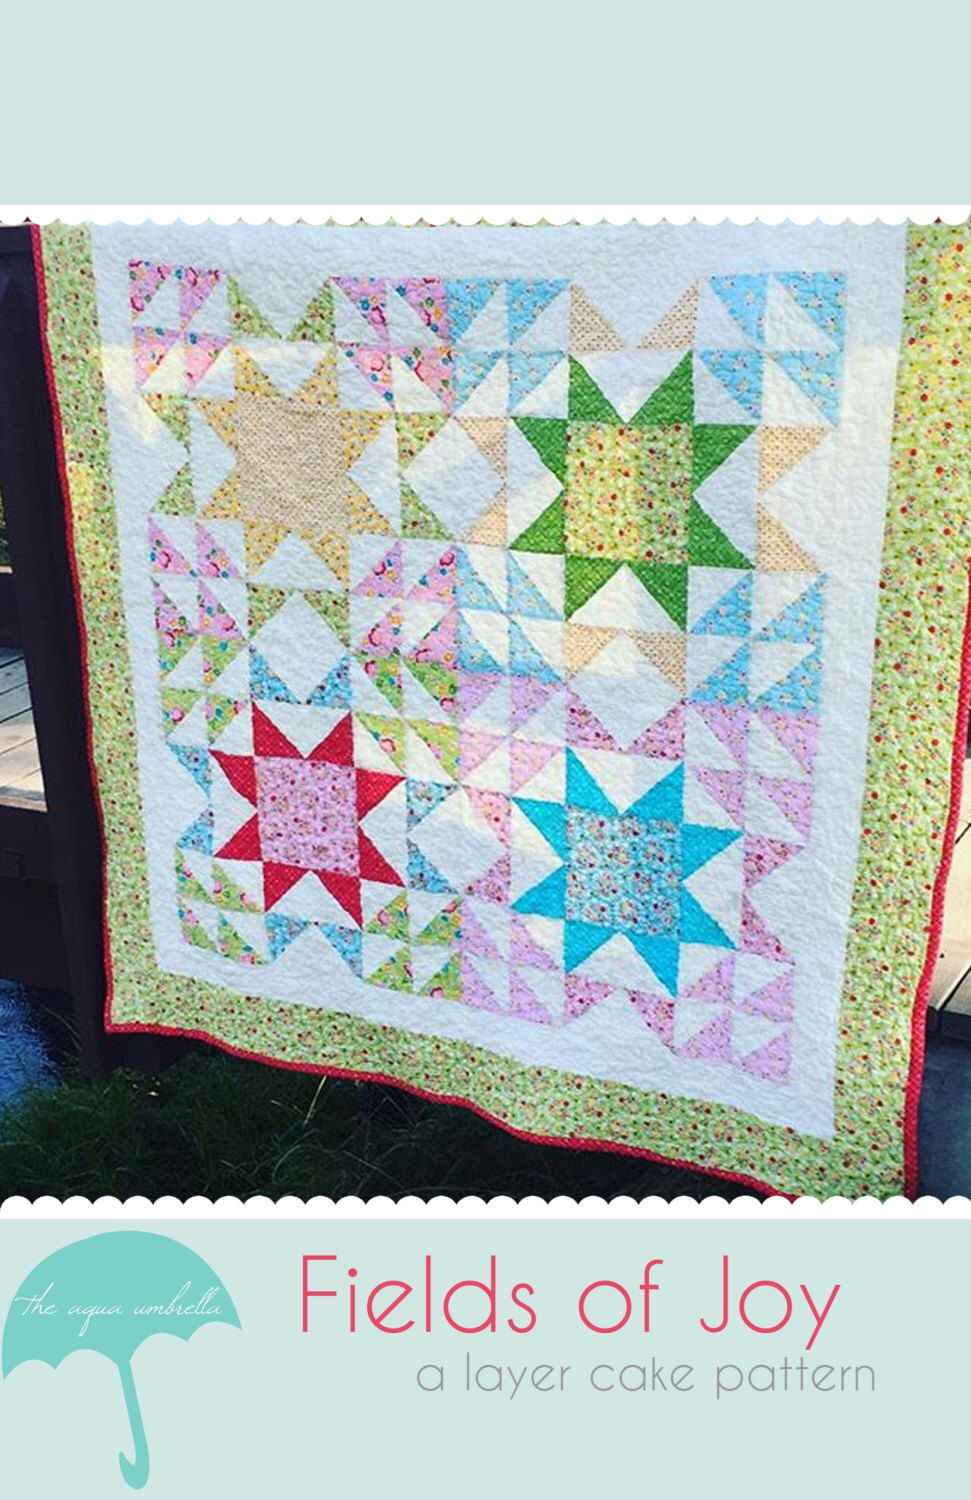 Fields of joy quilt pattern by theaquaumbrella on etsy